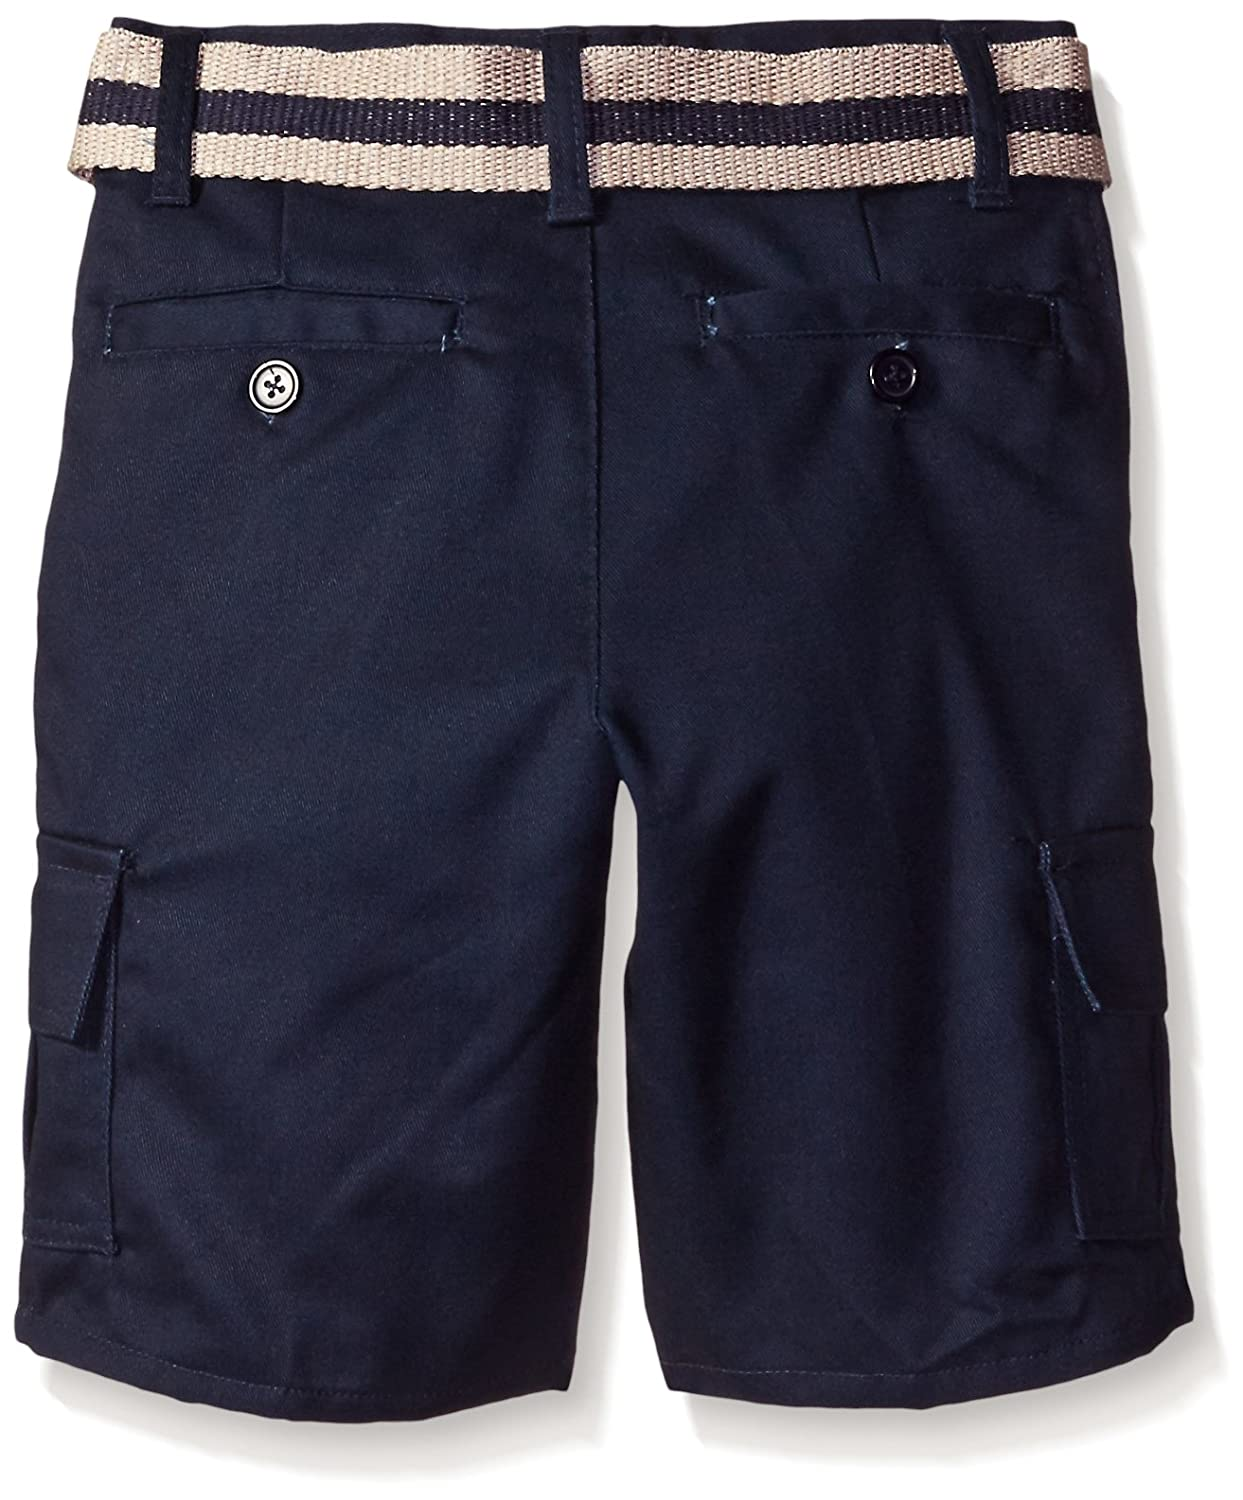 More Styles Available Eddie Bauer Boys Twill Short